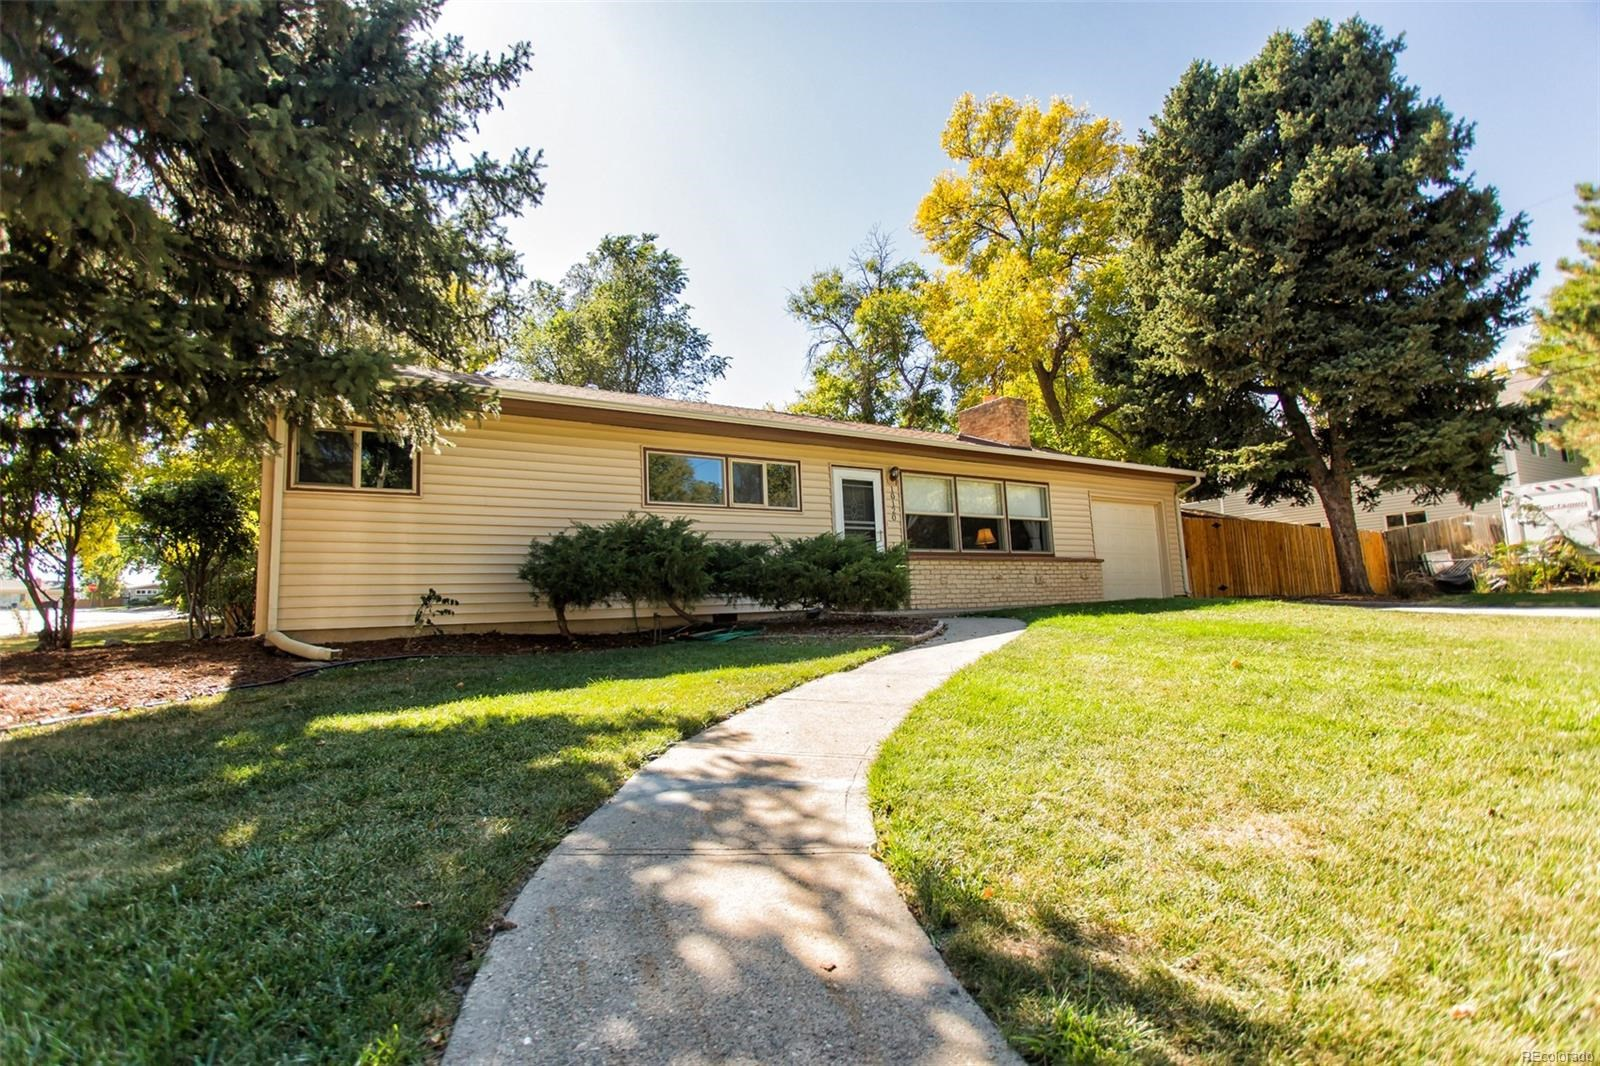 MLS# 1591889 - 2 - 10120 W 8th Place, Lakewood, CO 80215